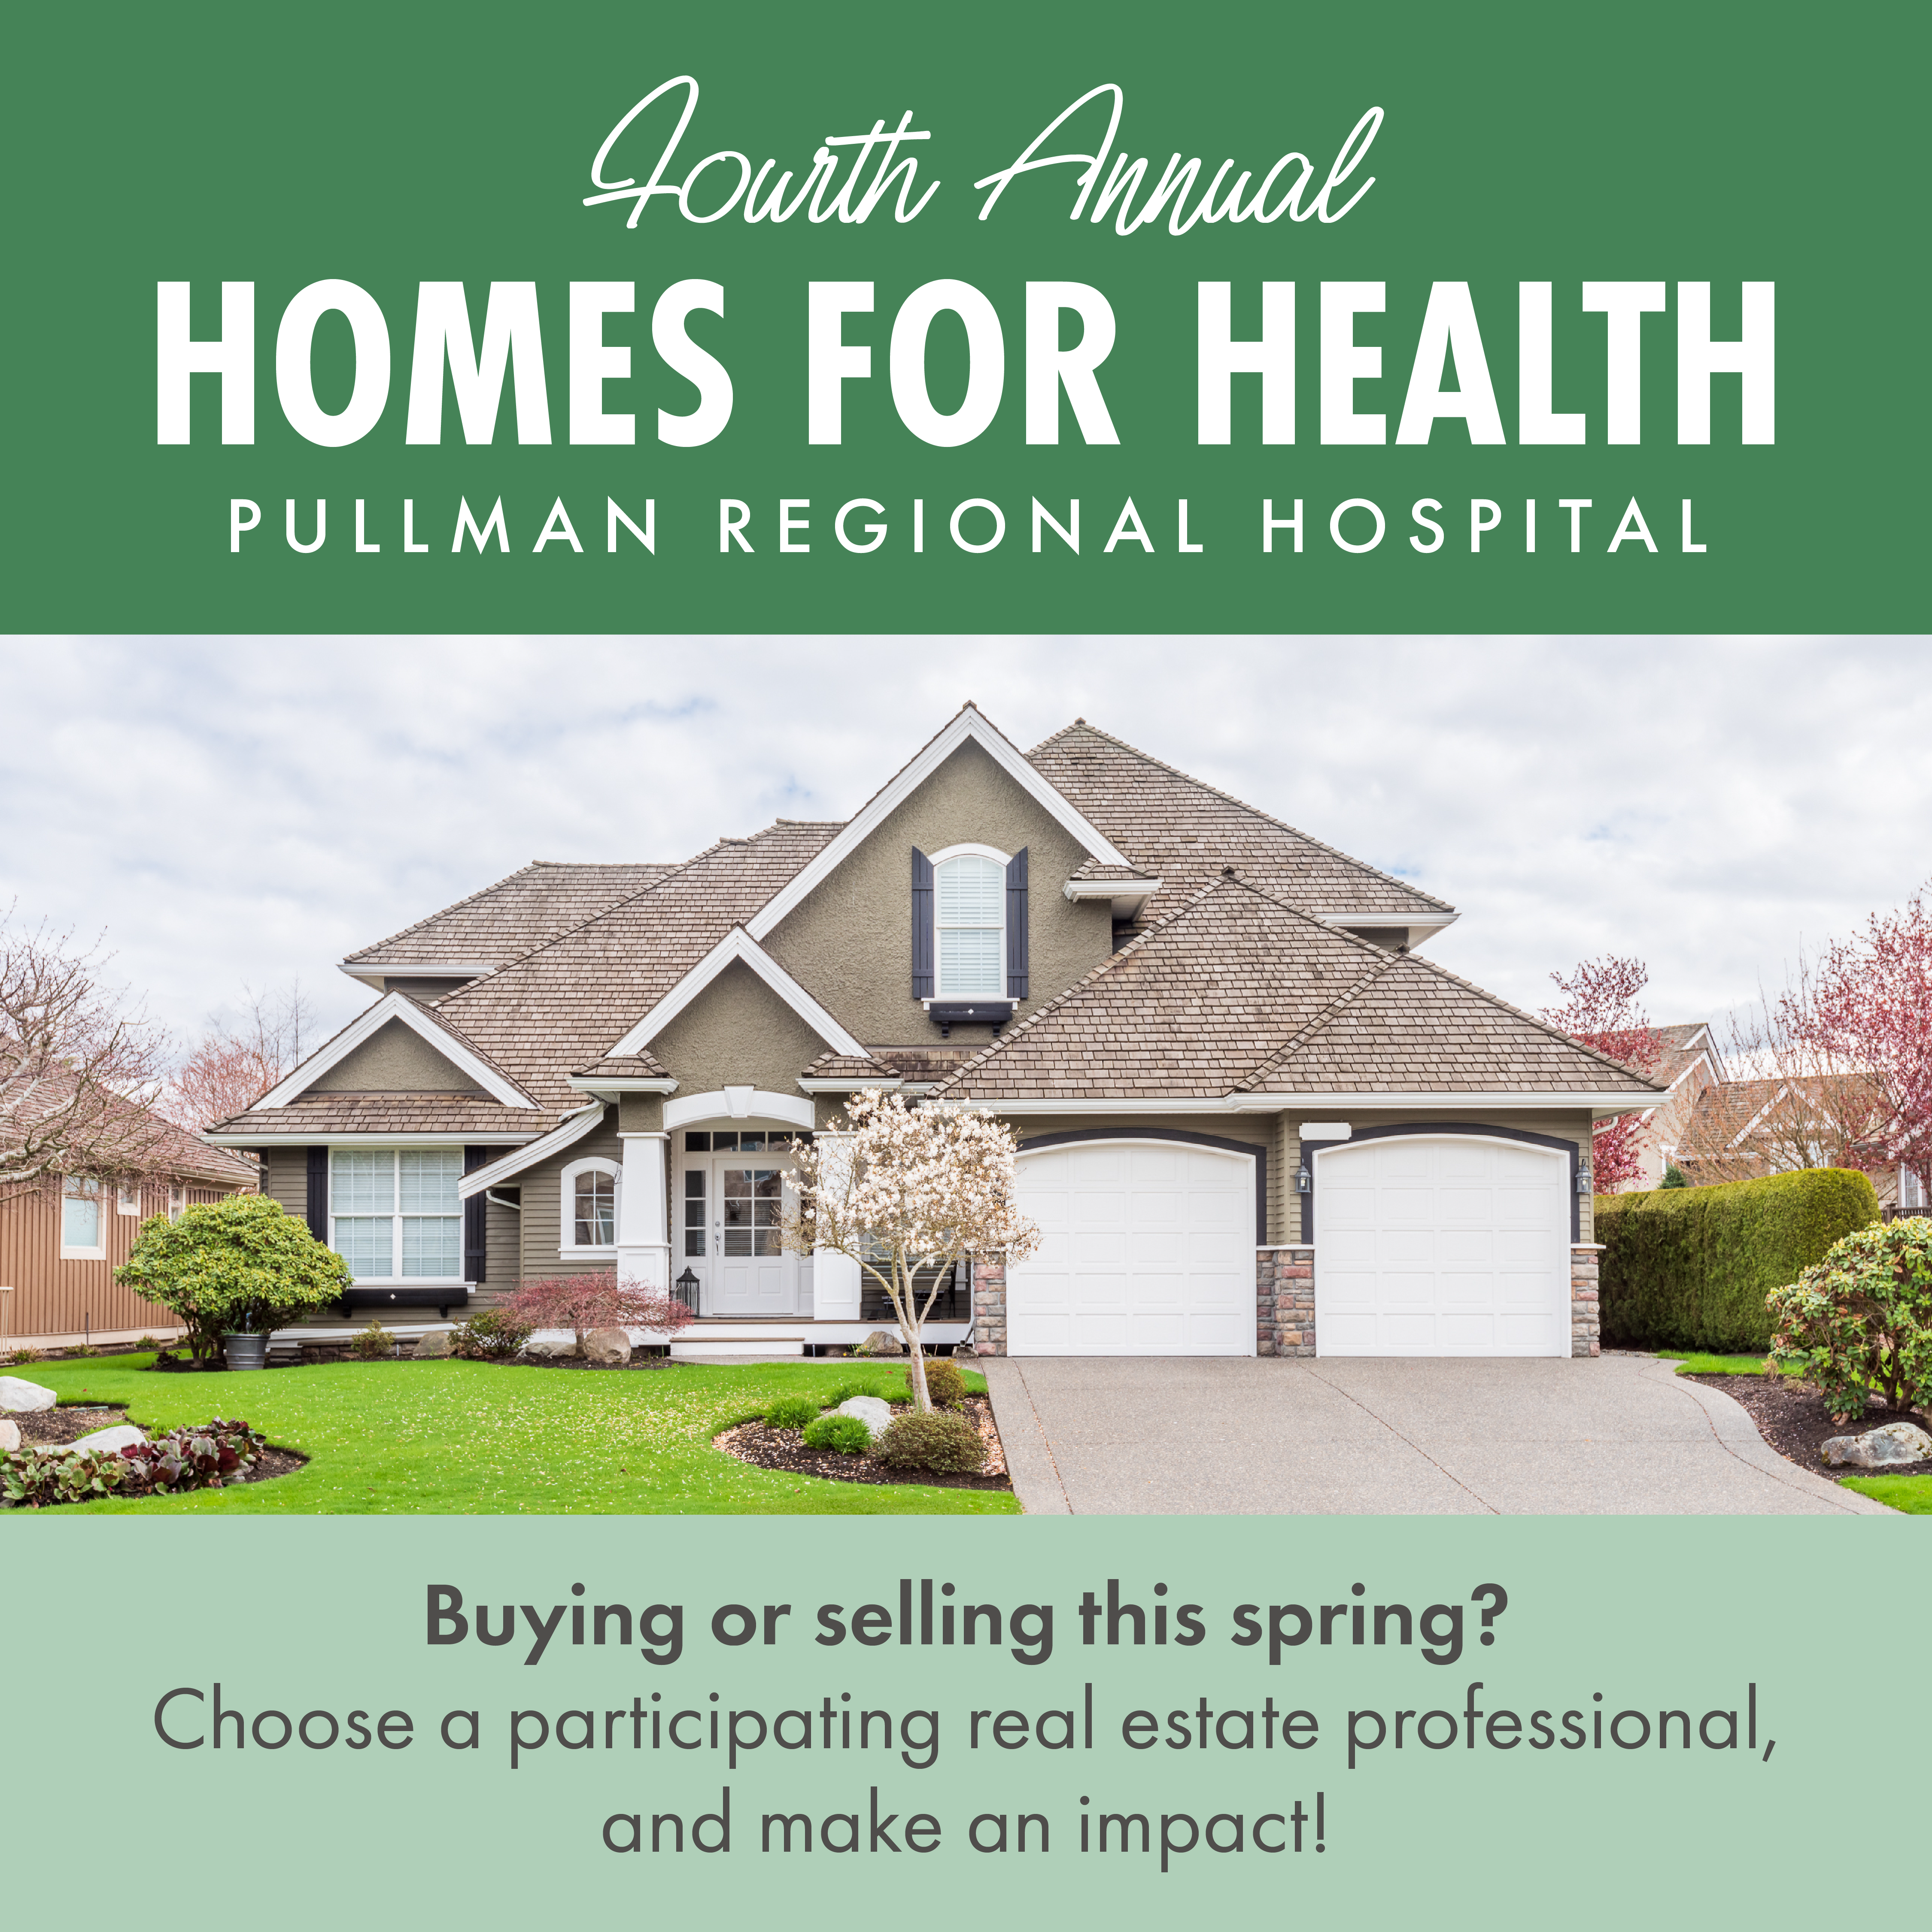 Homes for Health ad